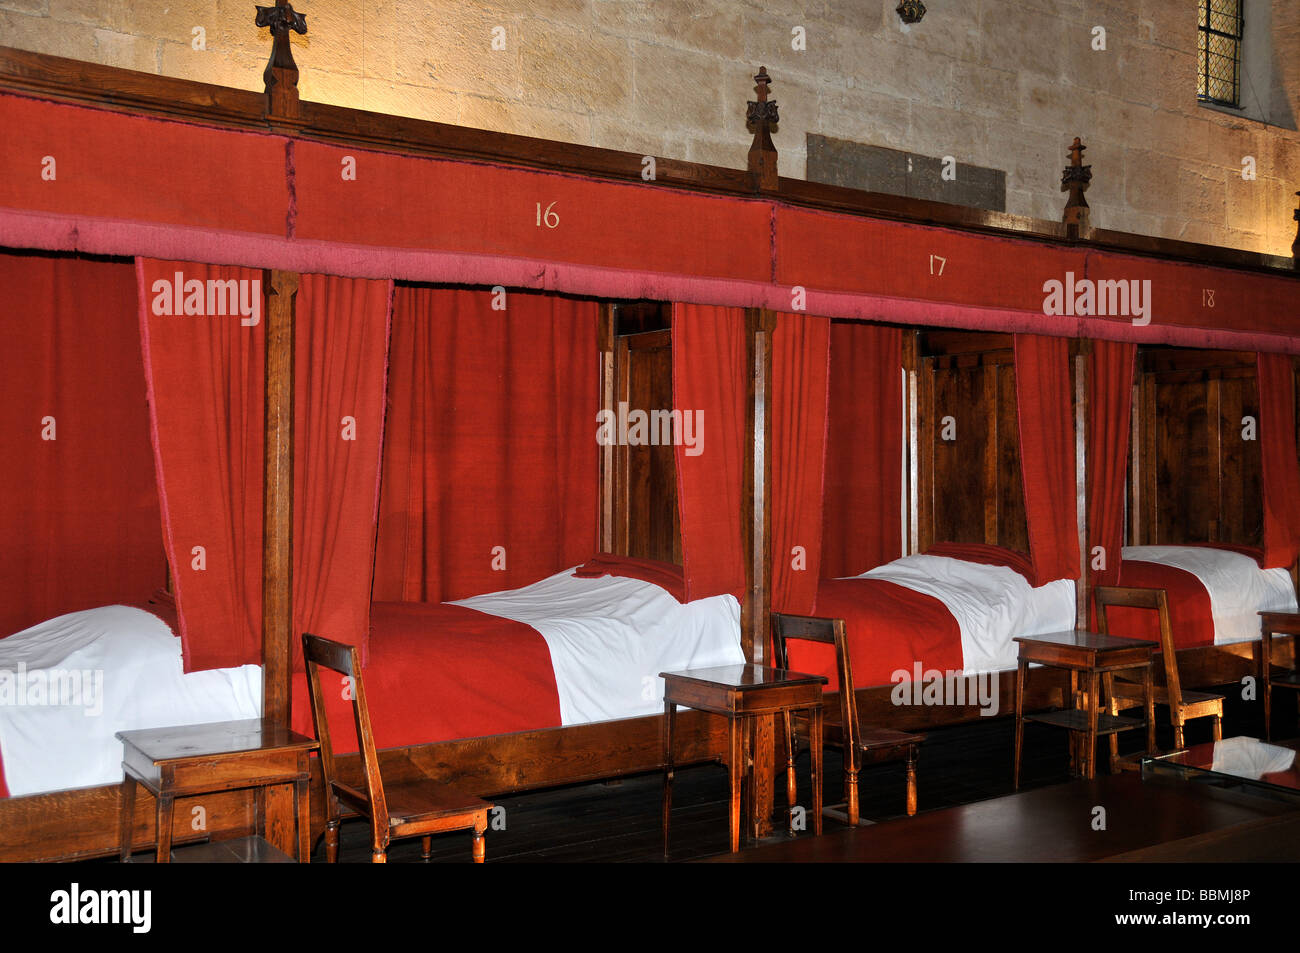 Hospices of Beaune, dormitory, Beaune, Cote d' Or, Burgundy, France, Europ - Stock Image